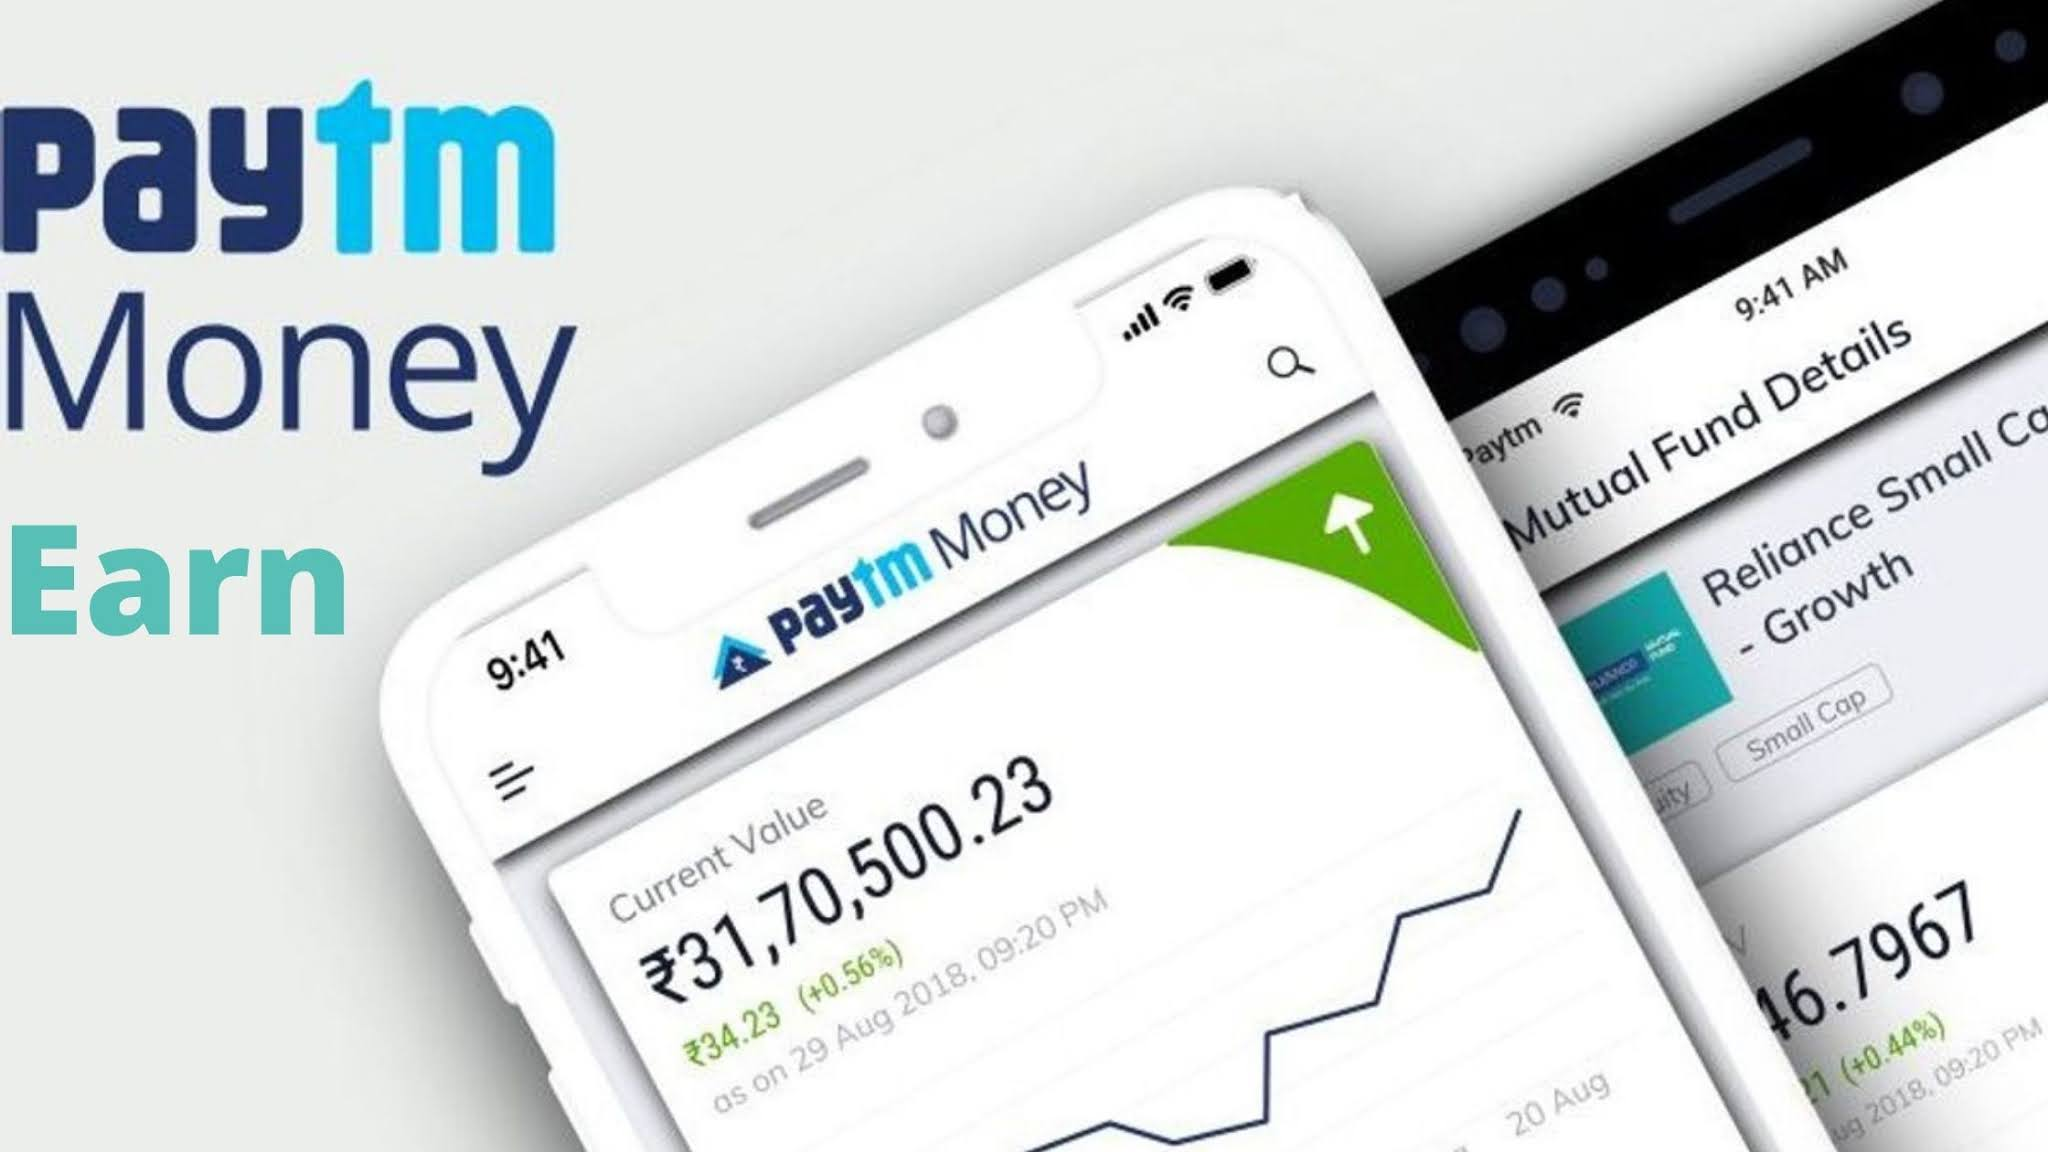 How to Earn Money From Paytm